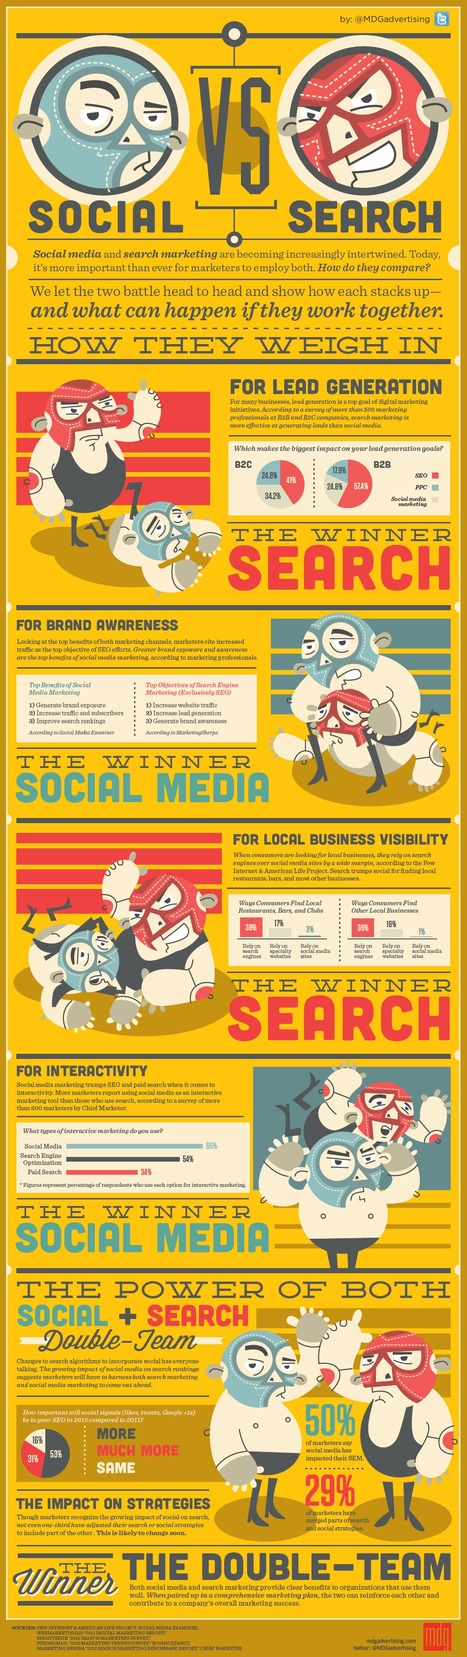 Social vs Search #Infographic | An Eye on New Media | Scoop.it